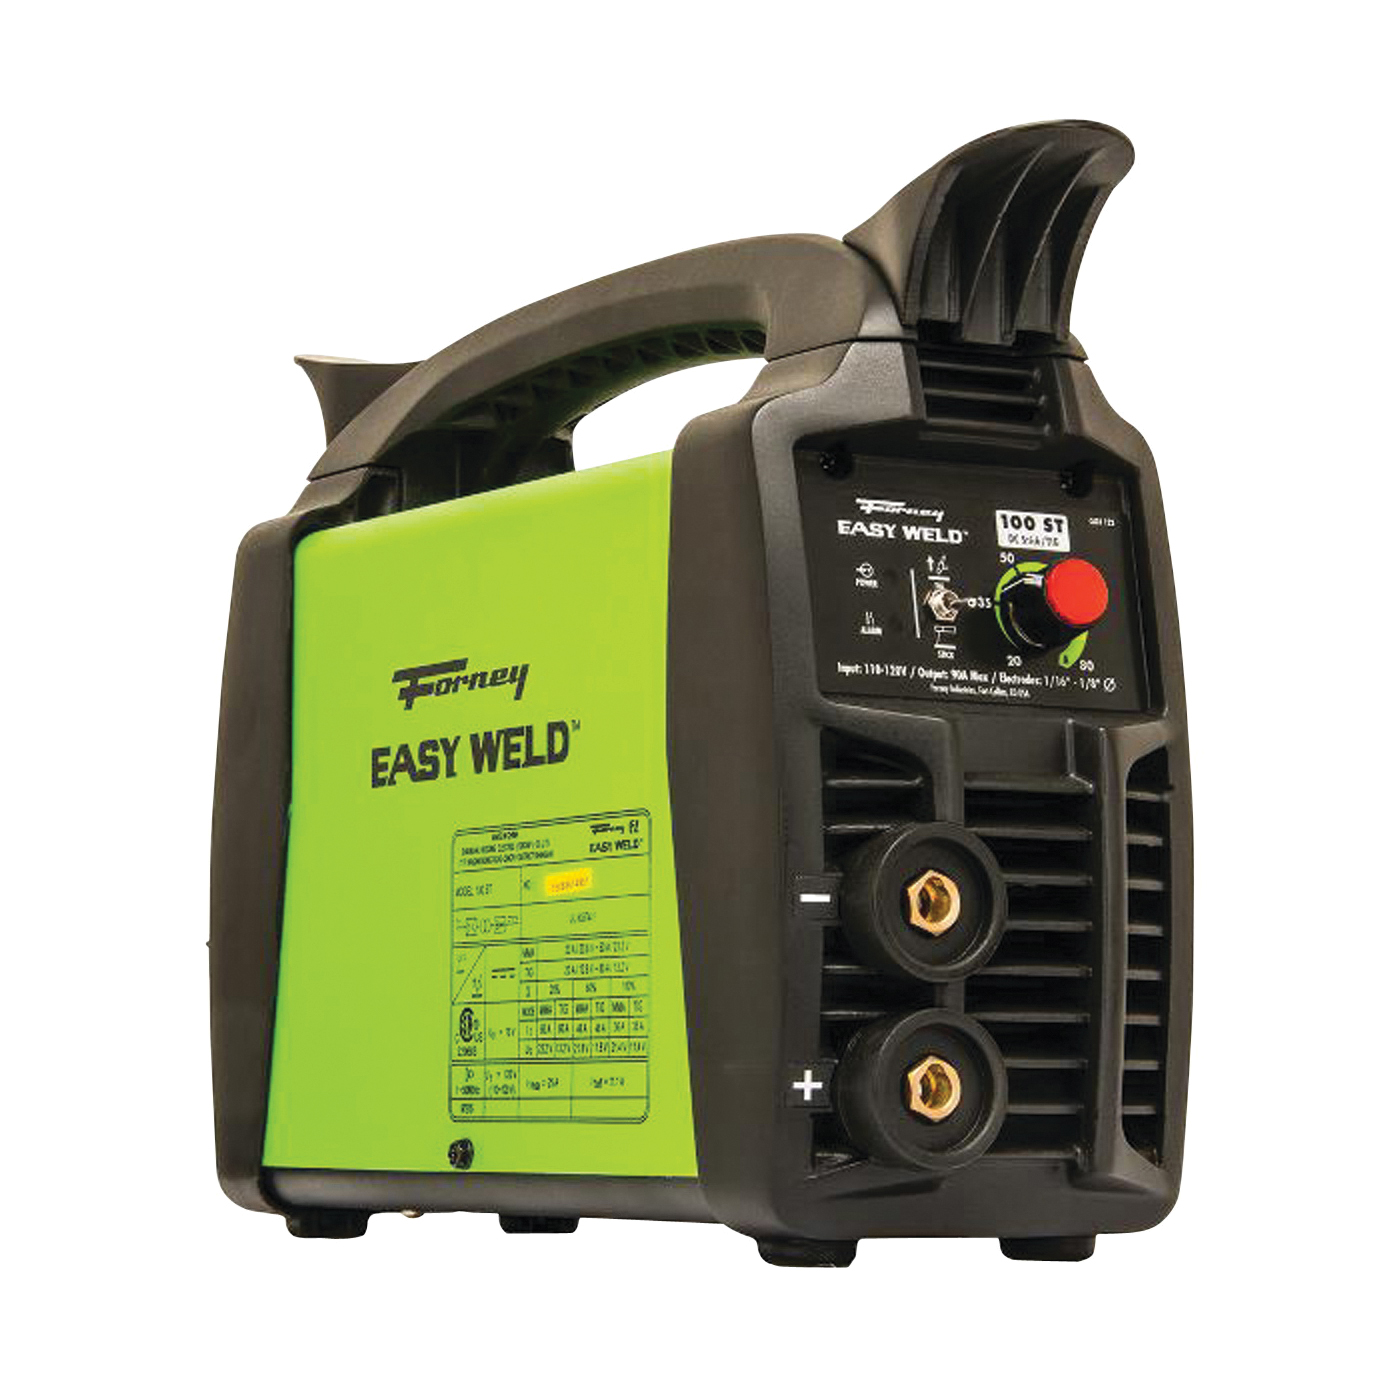 Picture of Forney Easy Weld 298 Stick Machine, 120 V Input, 90 A Input, 1 -Phase, 5/16 in